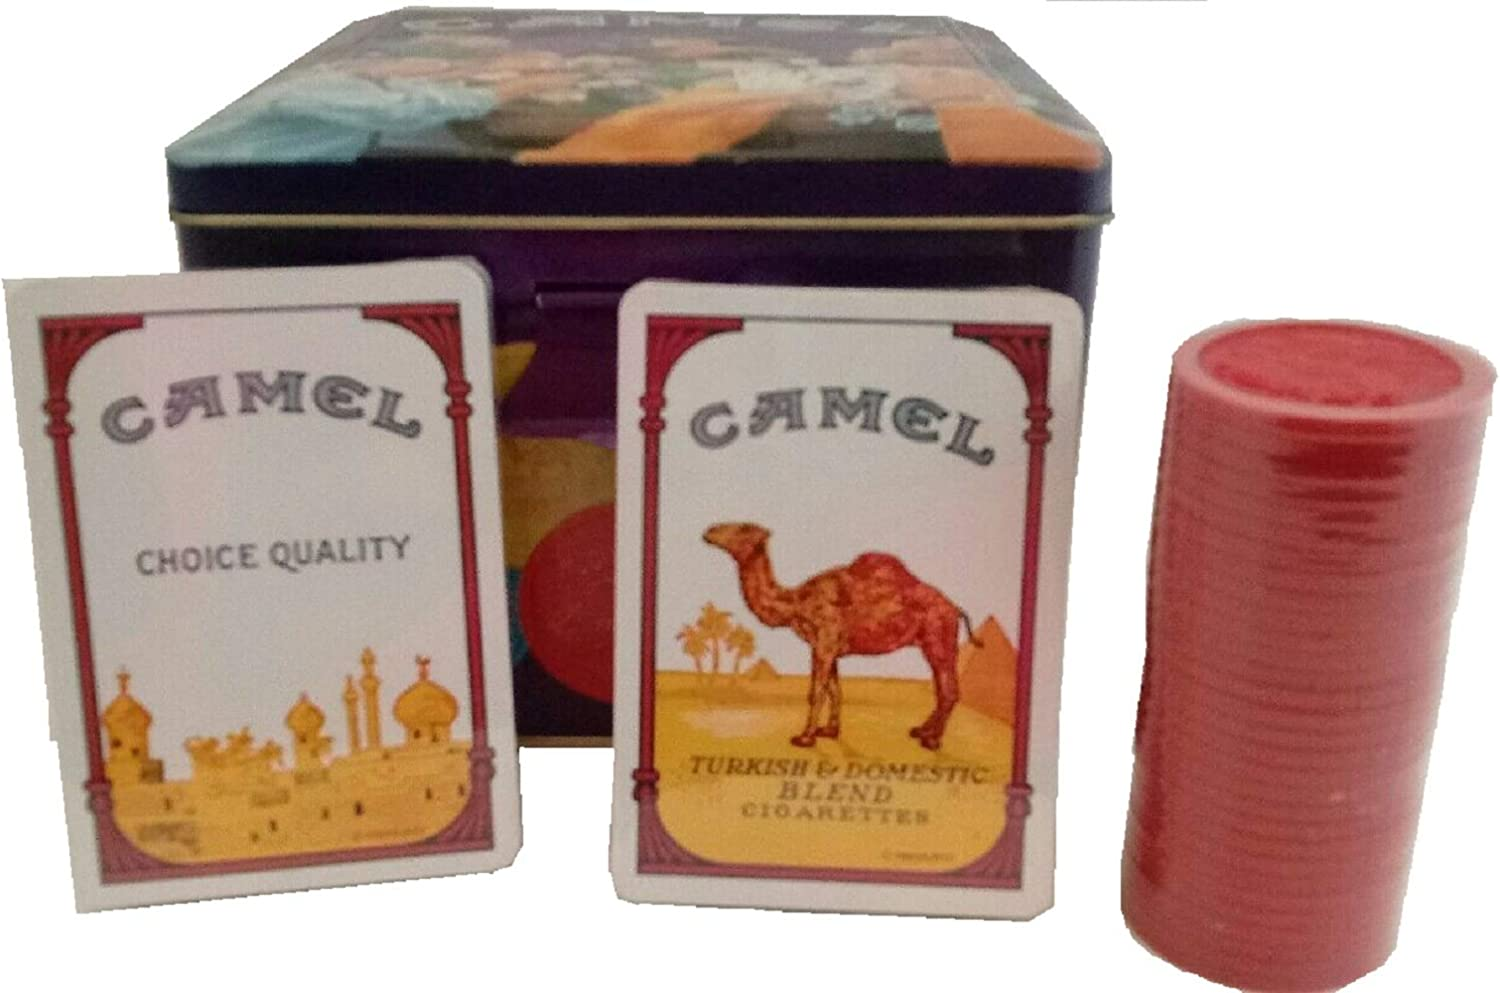 1994 Camel Poker Set with Collectible Tin Includes Cards/Chips. Joe Camel.